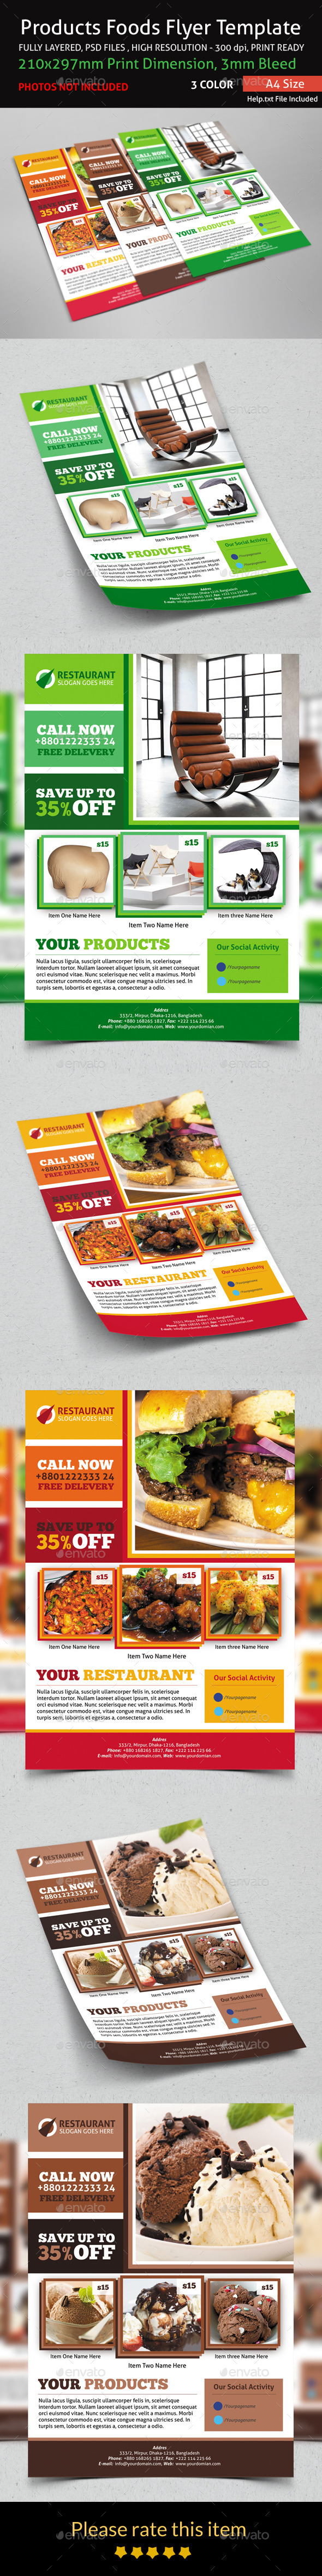 GraphicRiver Products Foods Flyer Template 9178057